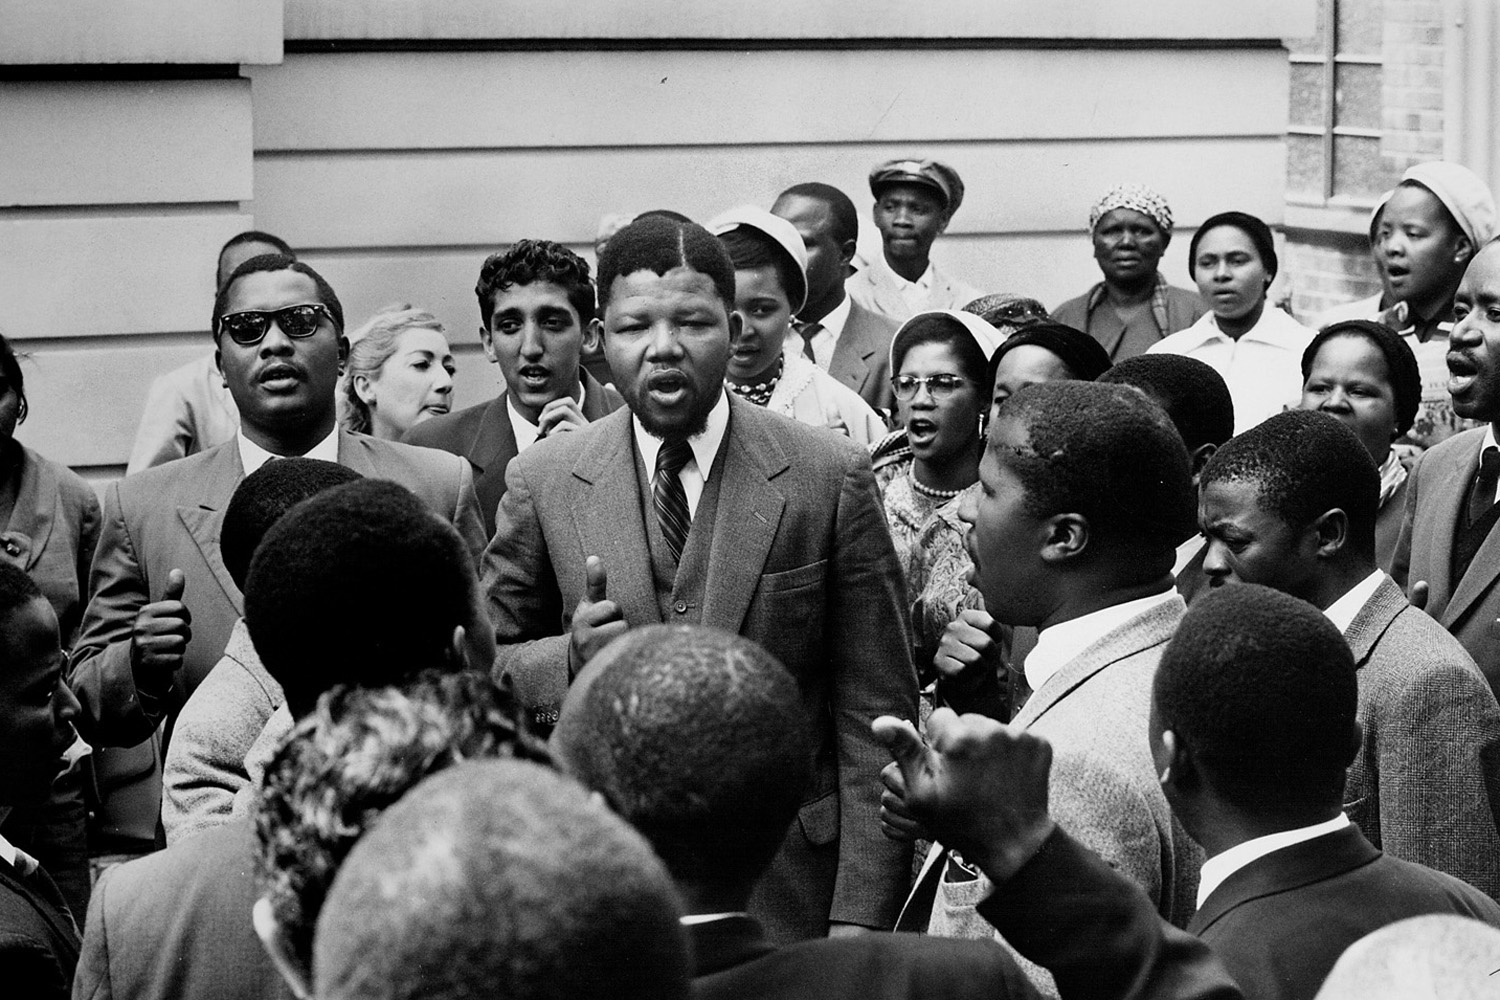 Mandela, center, stands amid a gathering of other co-defendants during the Treason Trial.